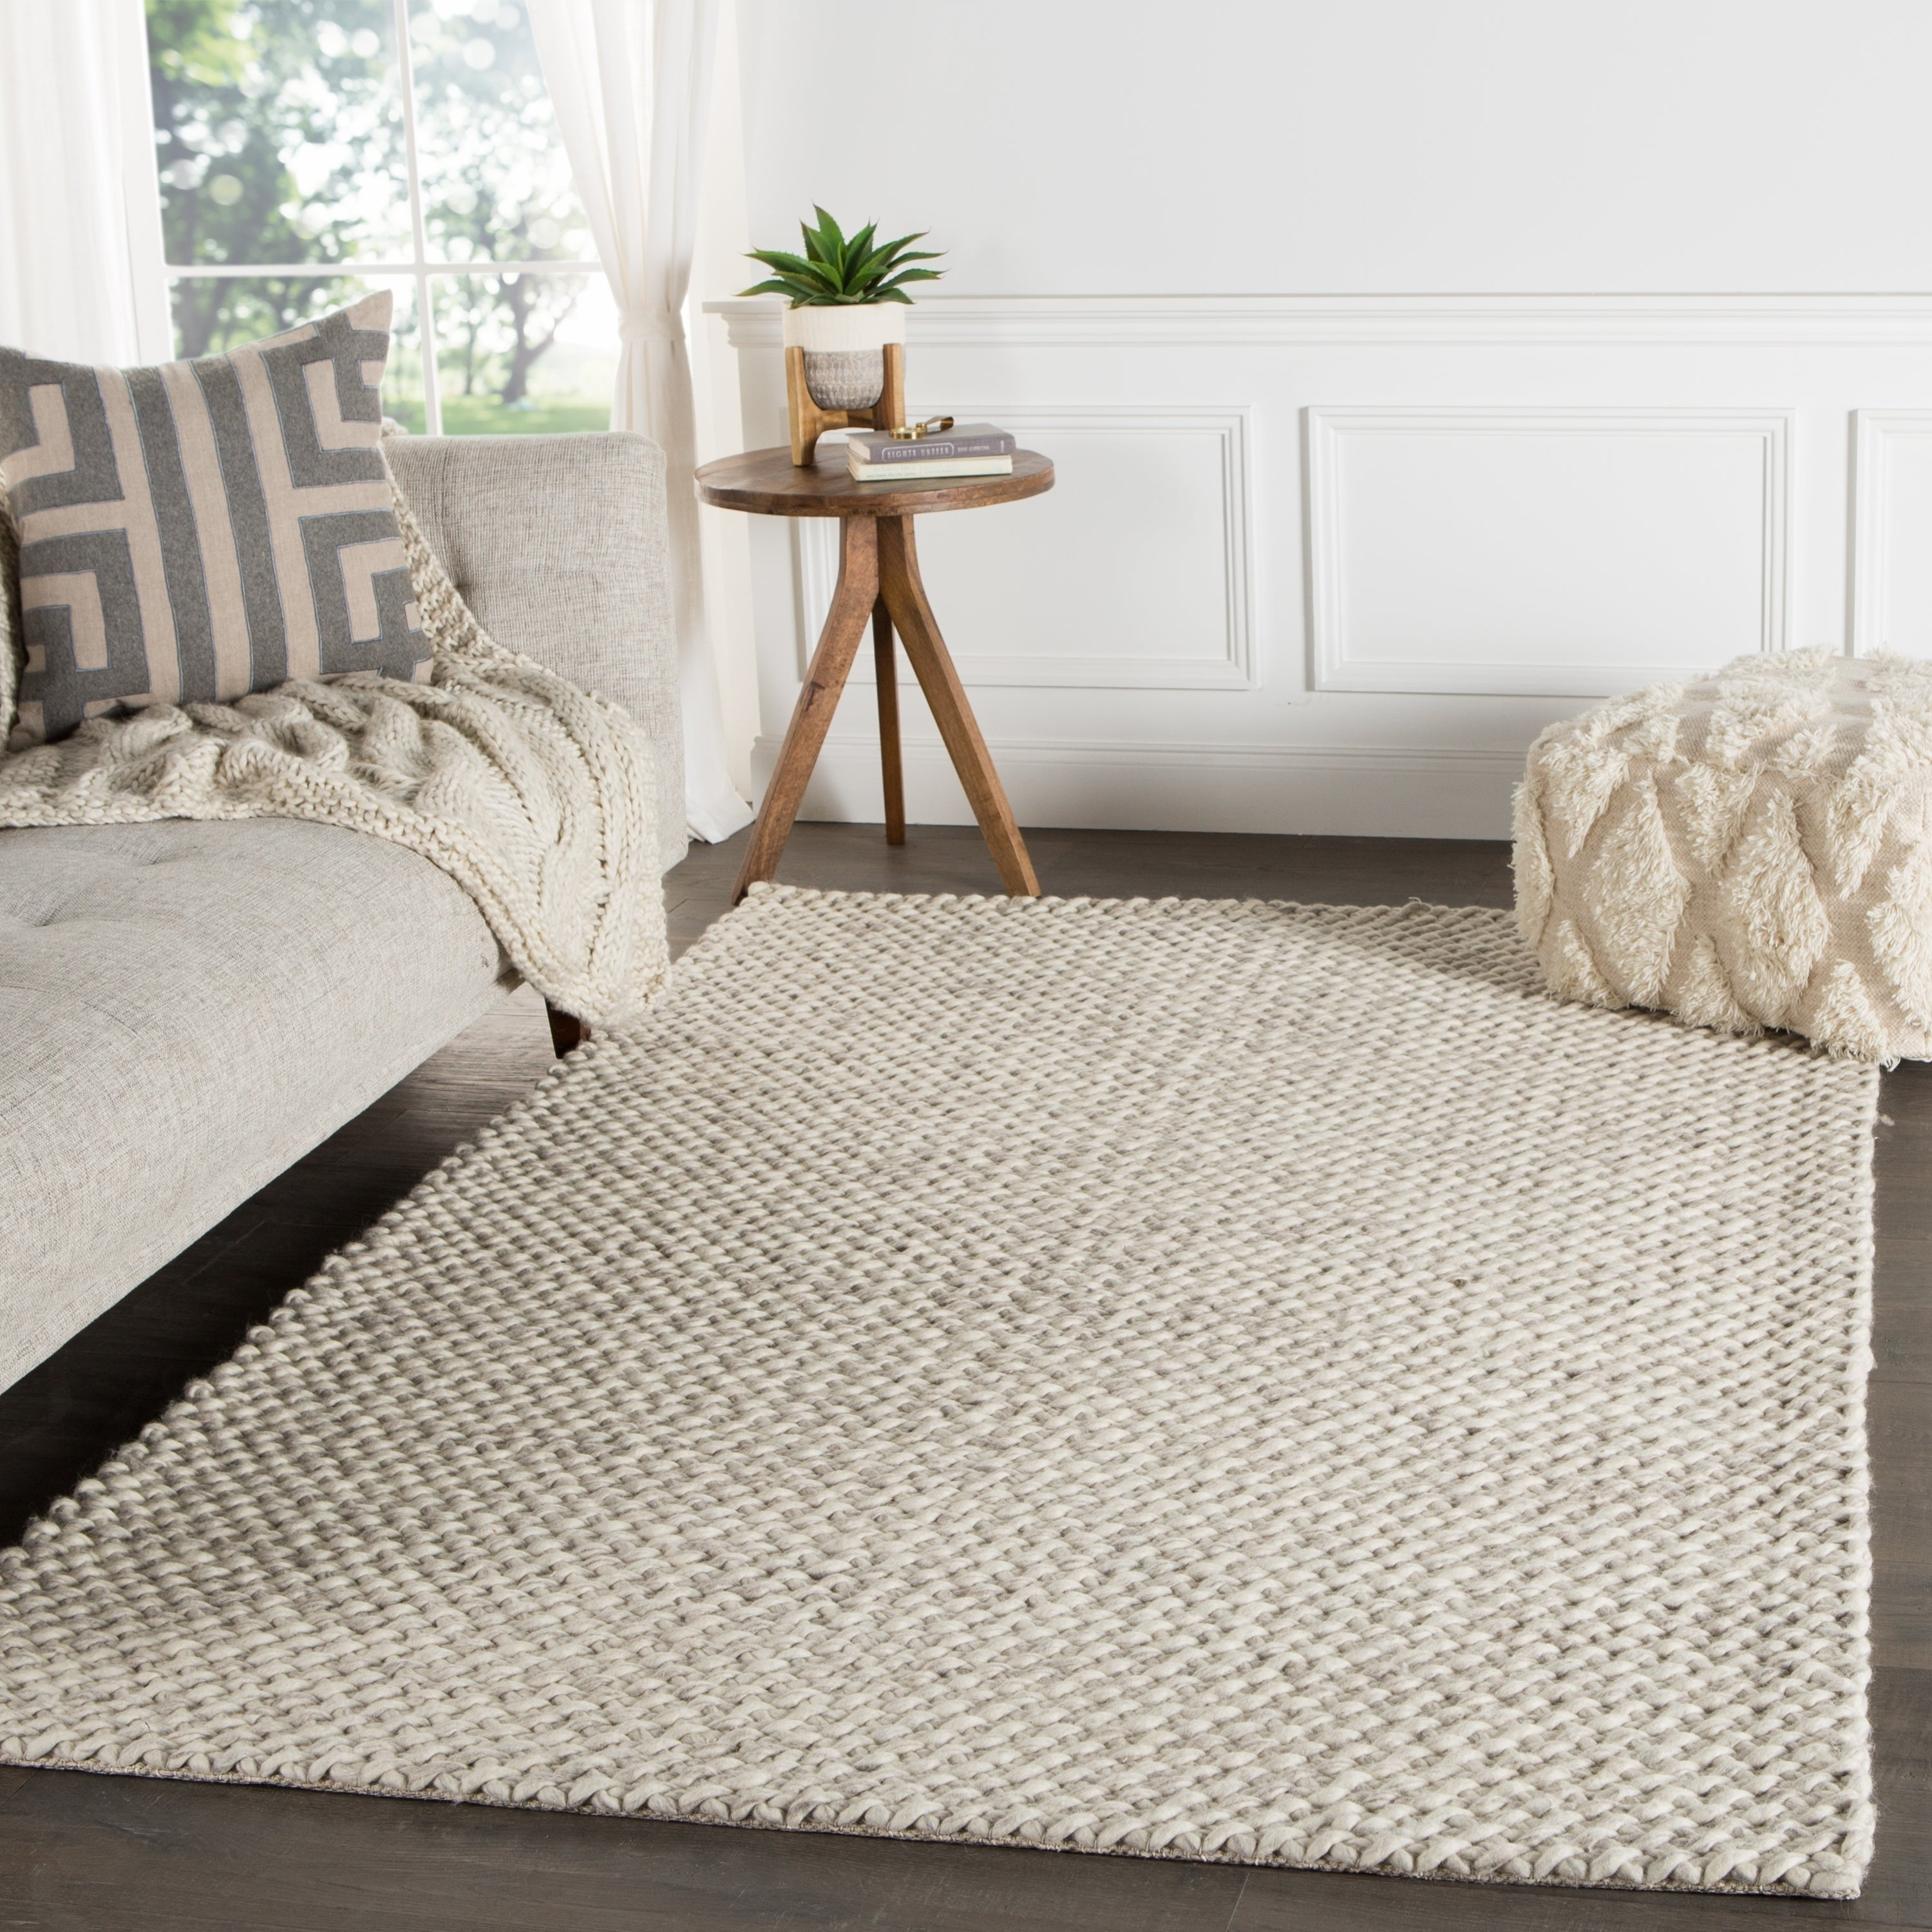 Shop Thurstan Handmade Solid Gray White Area Rug 9 X 12 8